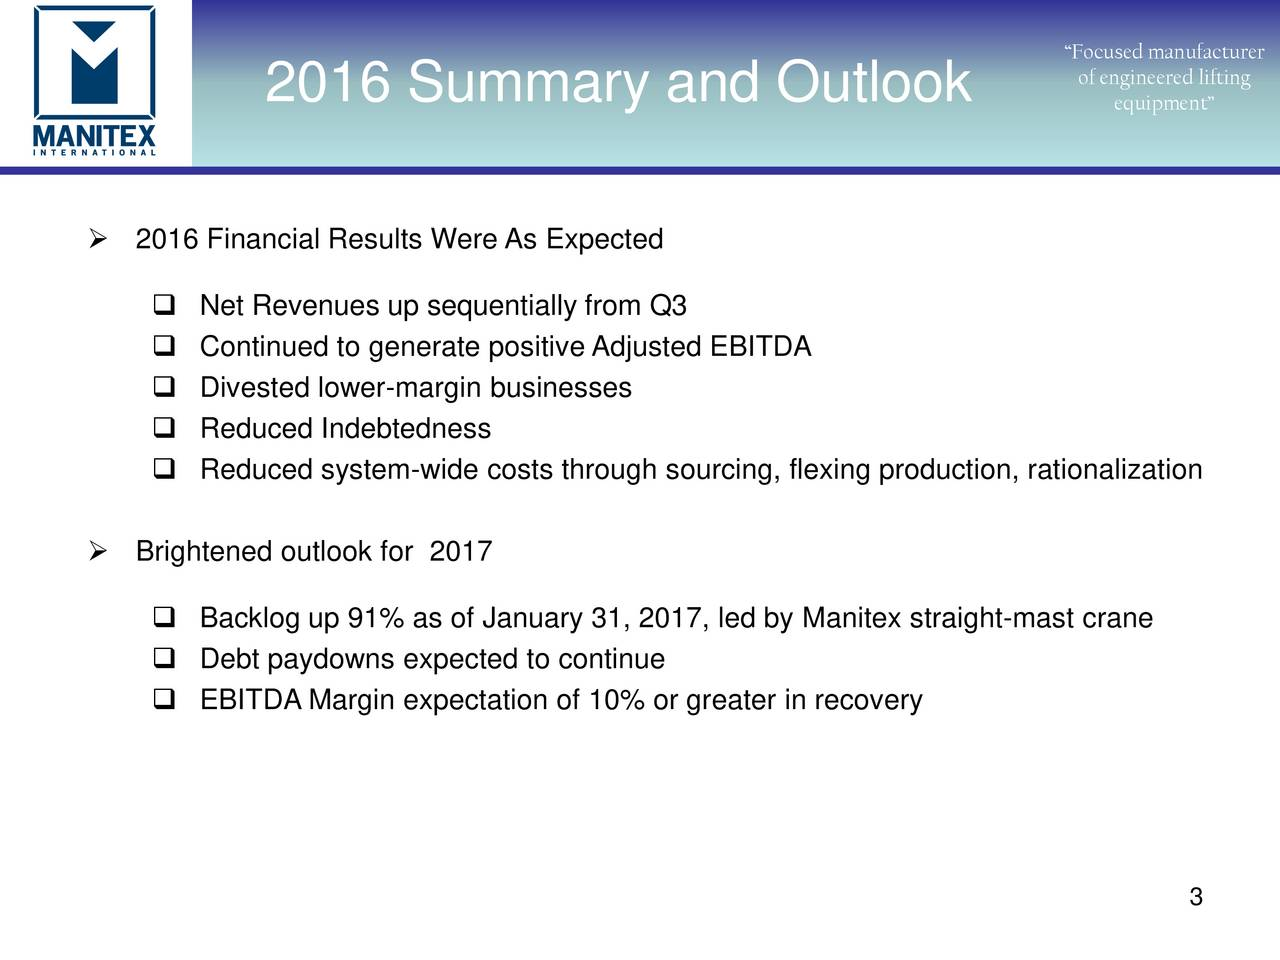 of engineered lifting 2016 Summary and Outlook equipment 2016 Financial Results Were As Expected Net Revenues up sequentially from Q3 Continued to generate positive Adjusted EBITDA Divested lower-margin businesses Reduced Indebtedness Reduced system-wide costs through sourcing, flexing production, rationalization Brightened outlook for 2017 Backlog up 91% as of January 31, 2017, led by Manitex straight-mast crane Debt paydowns expected to continue EBITDA Margin expectation of 10% or greater in recovery 3